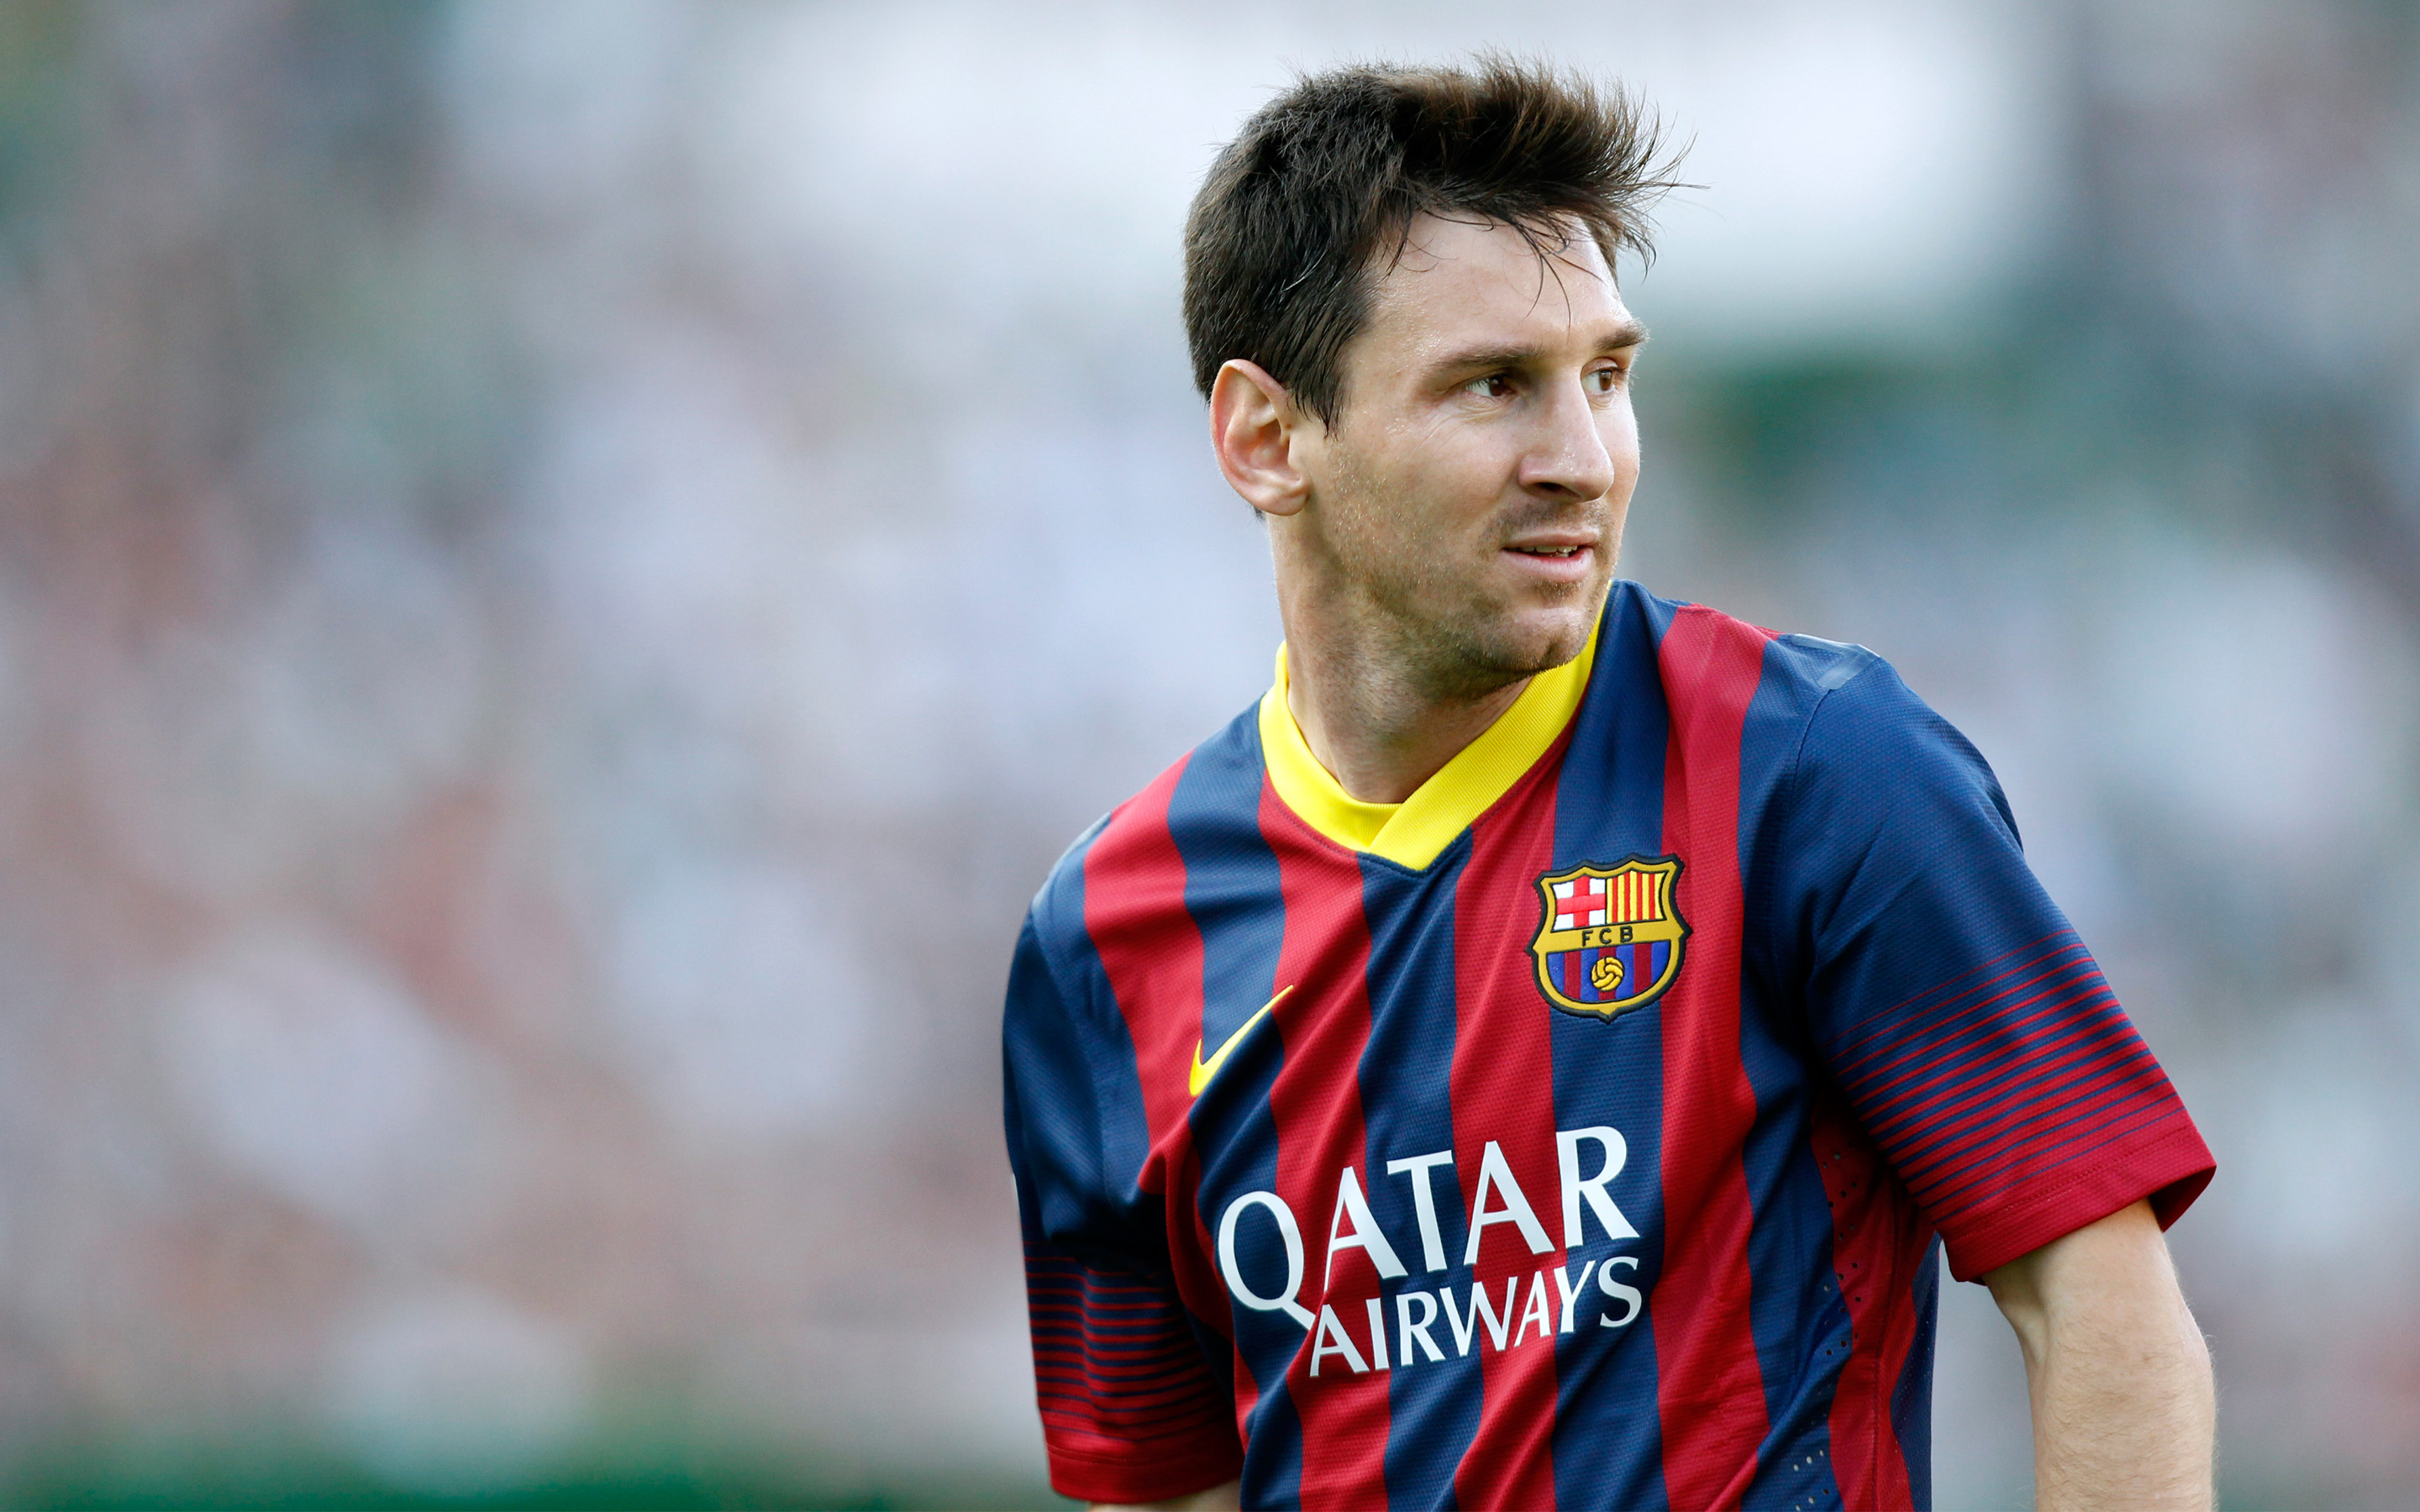 Messi Wallpapers, Photos And Desktop Backgrounds Up To 8K